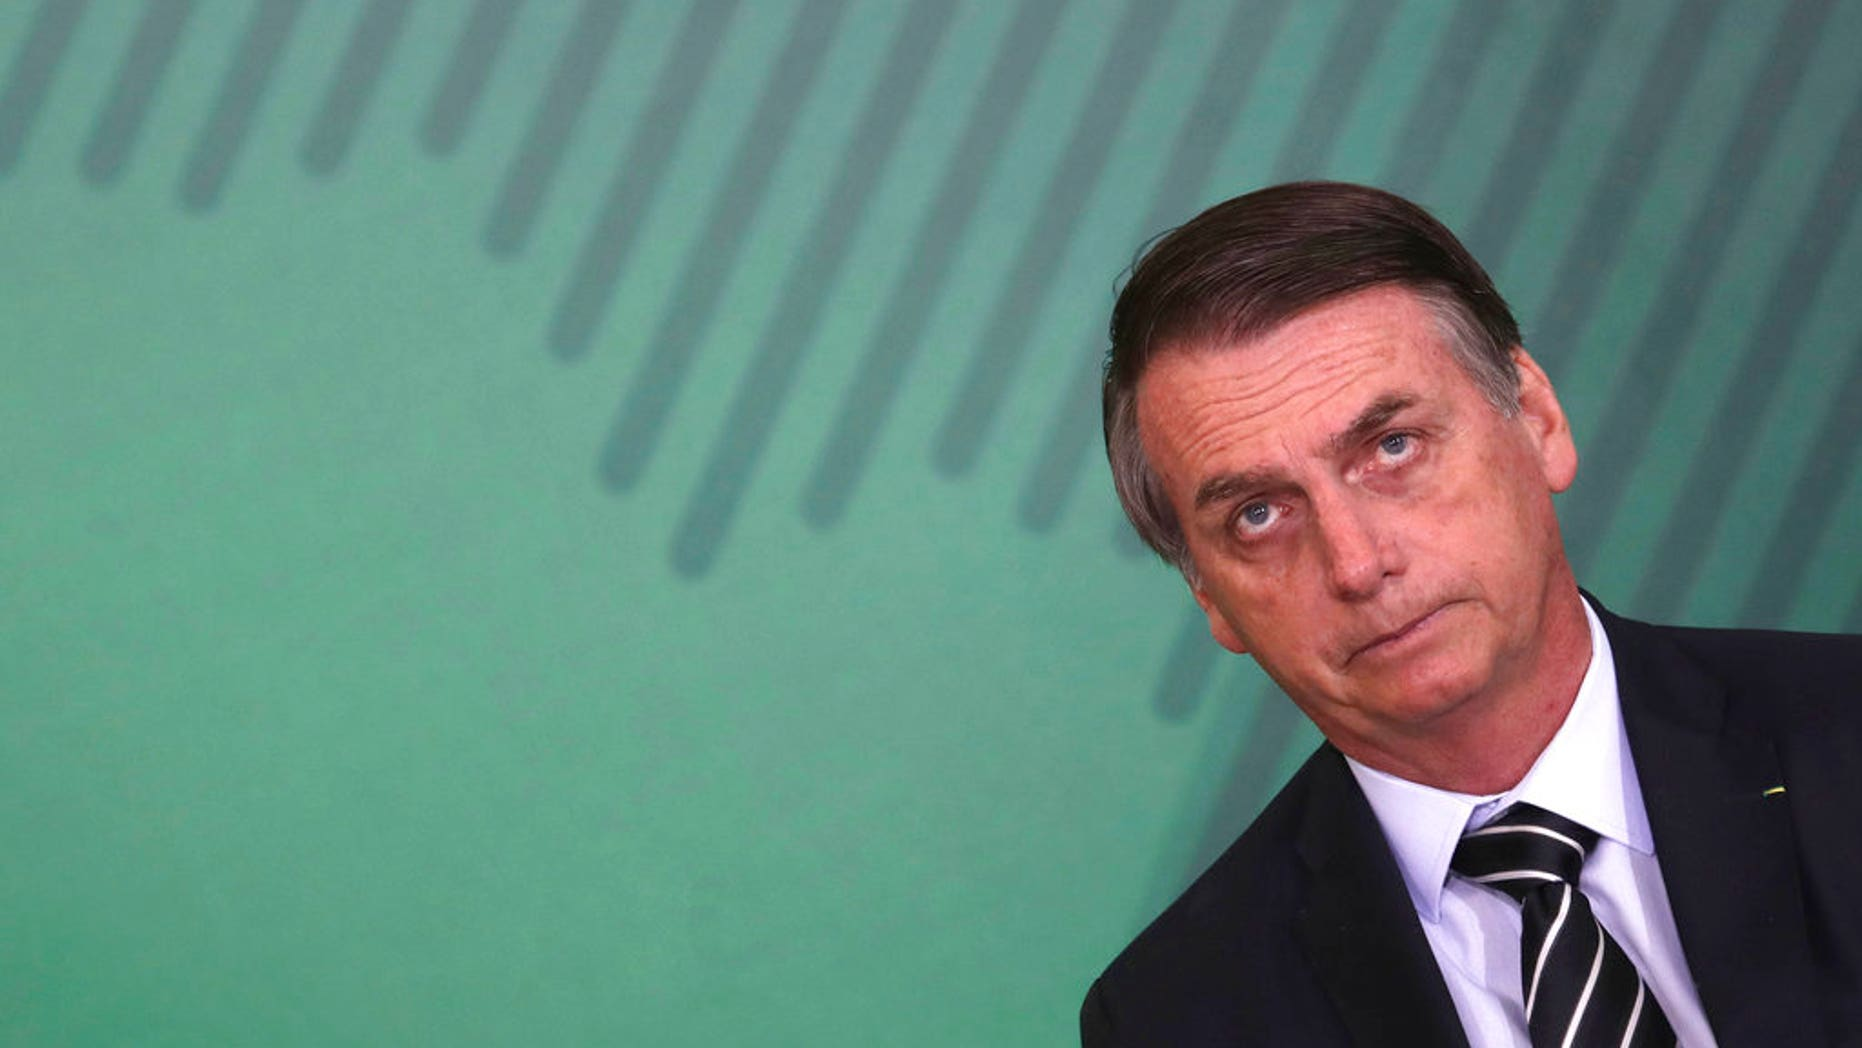 Brazil's President Jair Bolsonaro has made tackling crime in his country central to his policy.